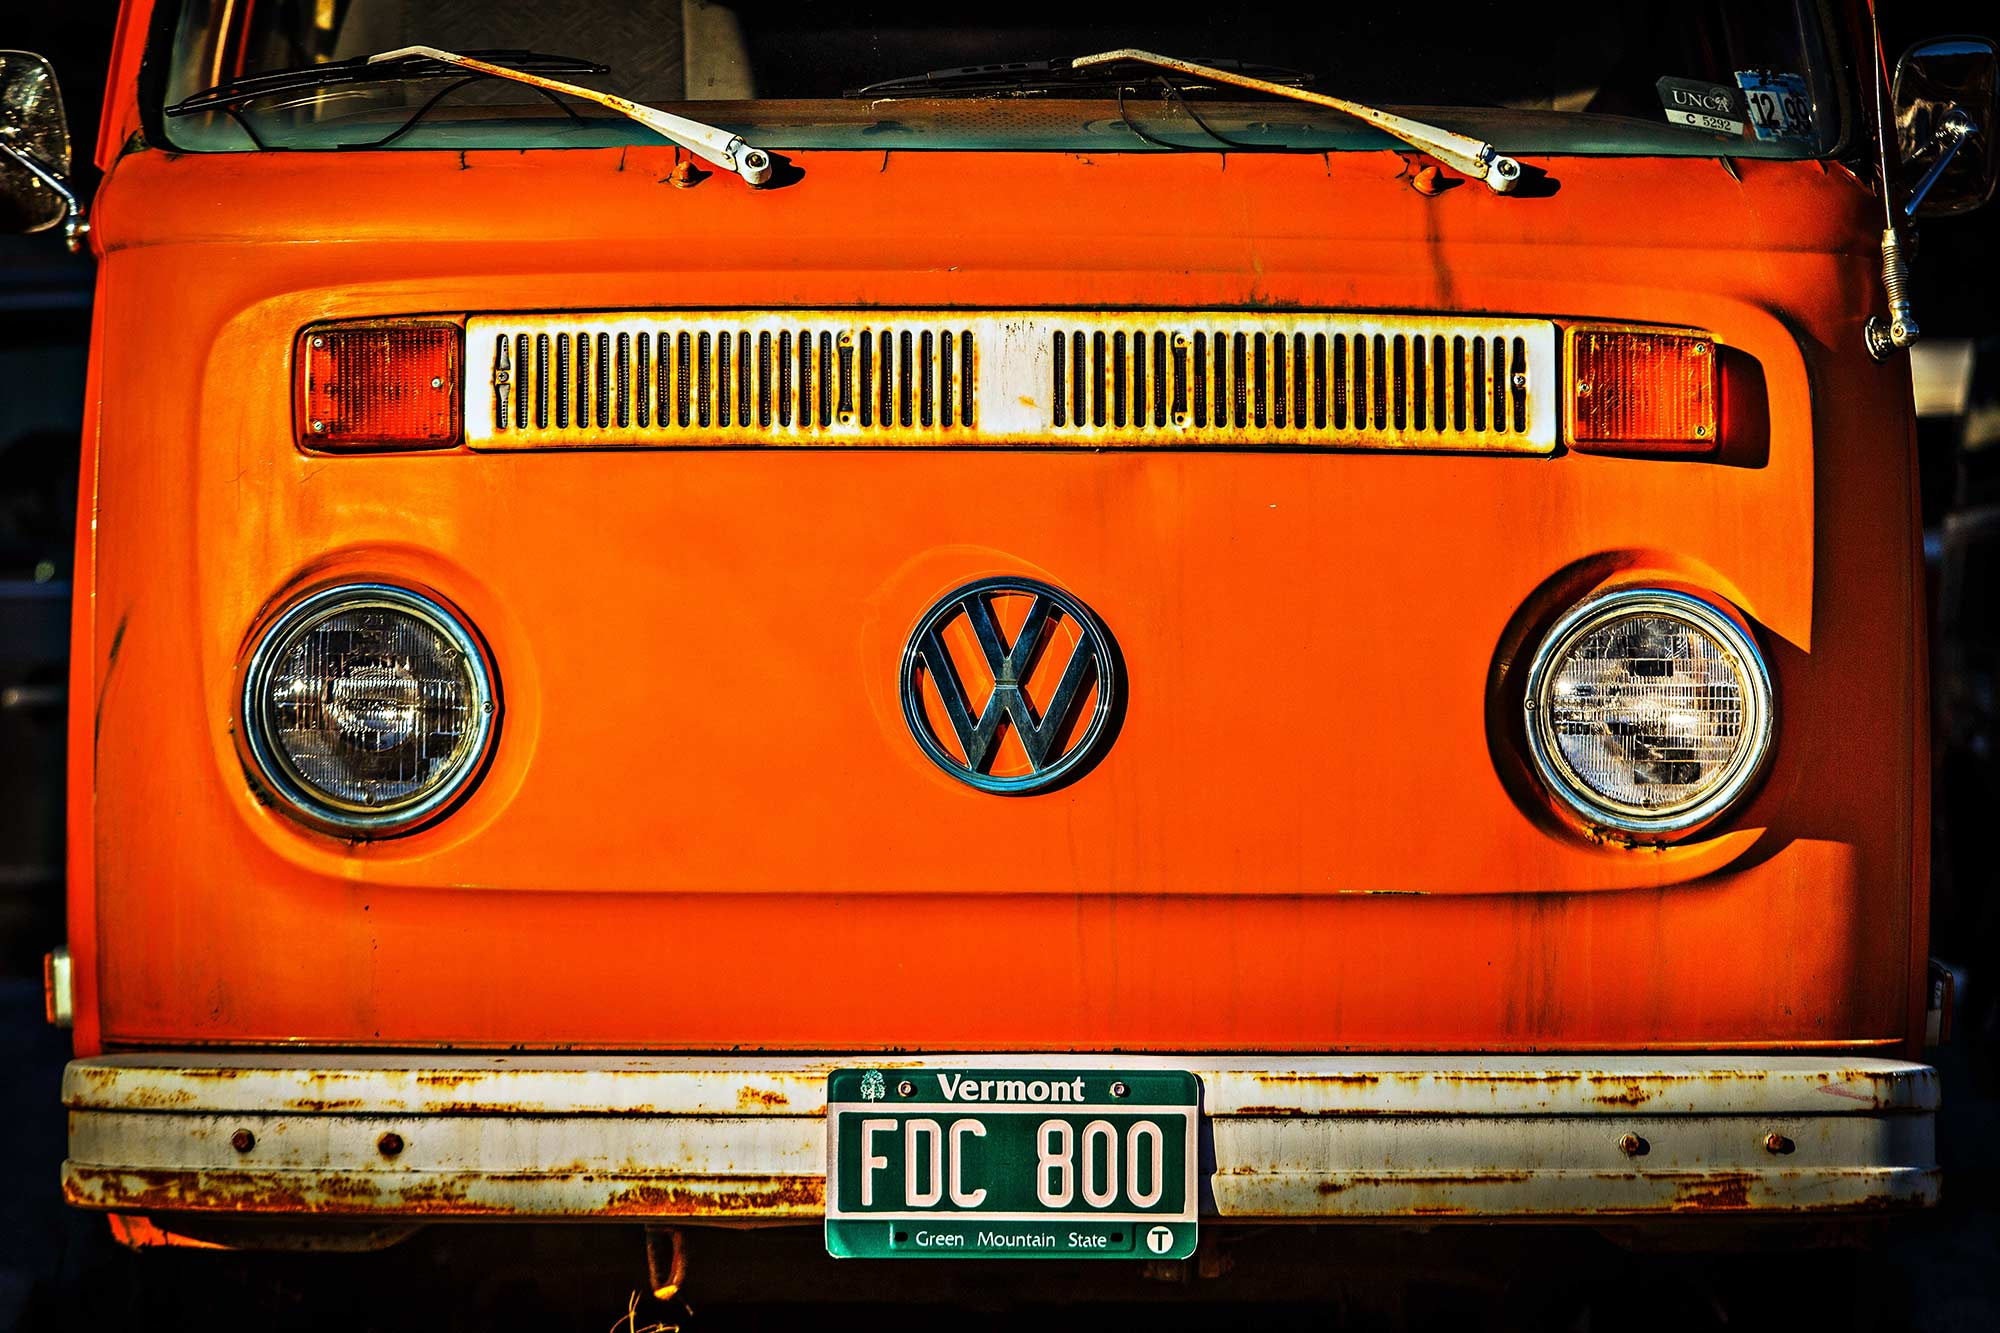 VW, Winsted, CT - 3/12/15